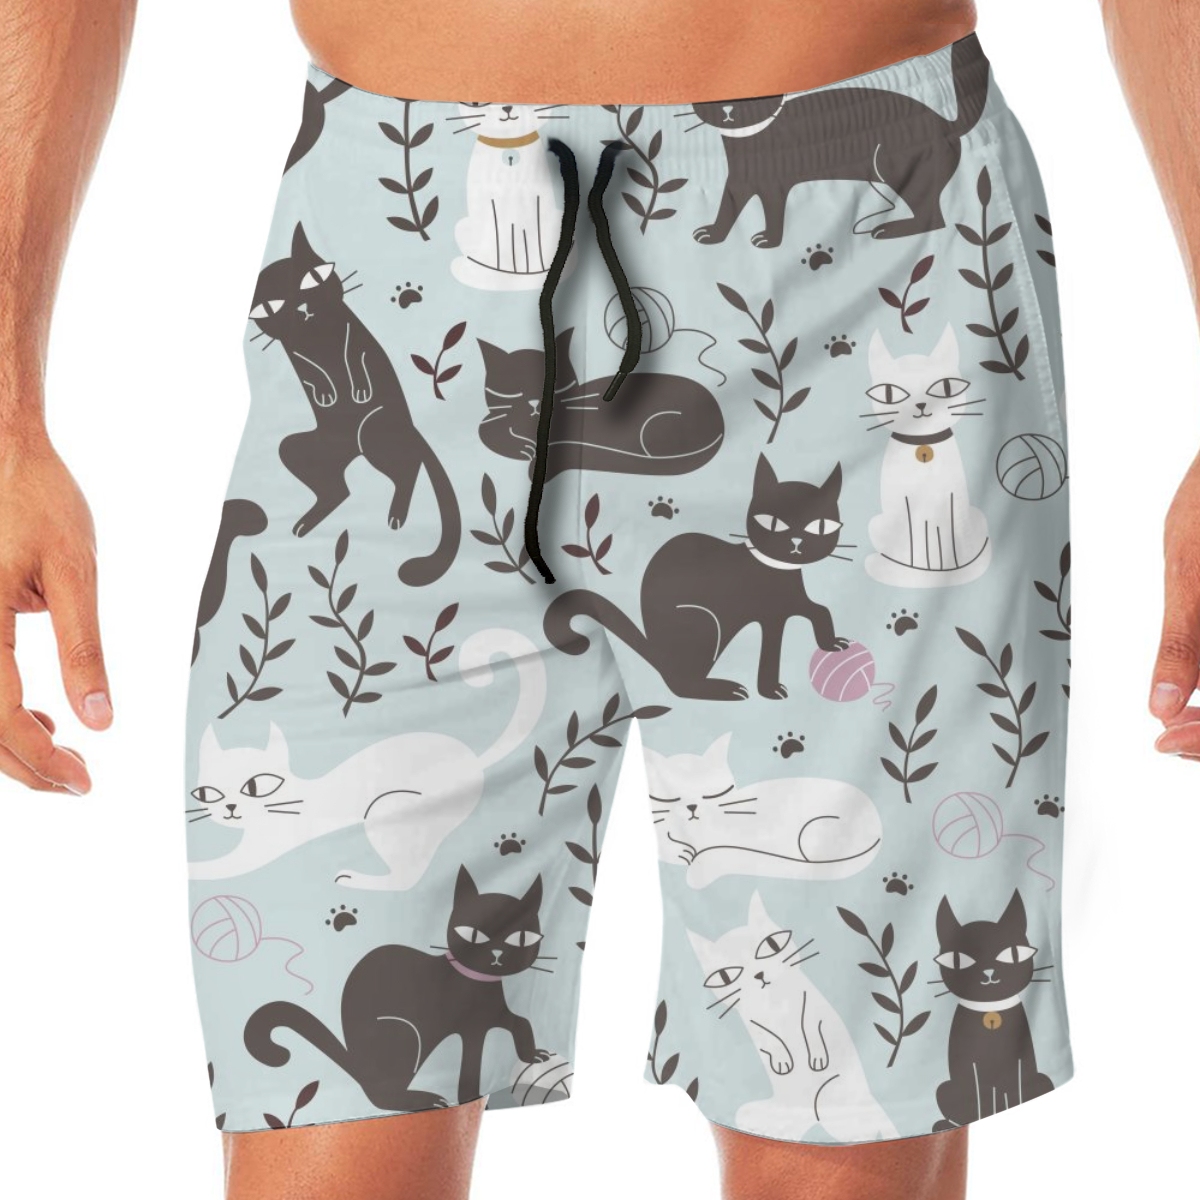 Cute Cats And Leaf  Men's Beach Pants Quick Drying Beach Shorts Swimming Surfing Boating Water Sports Trunks Swimwear Short